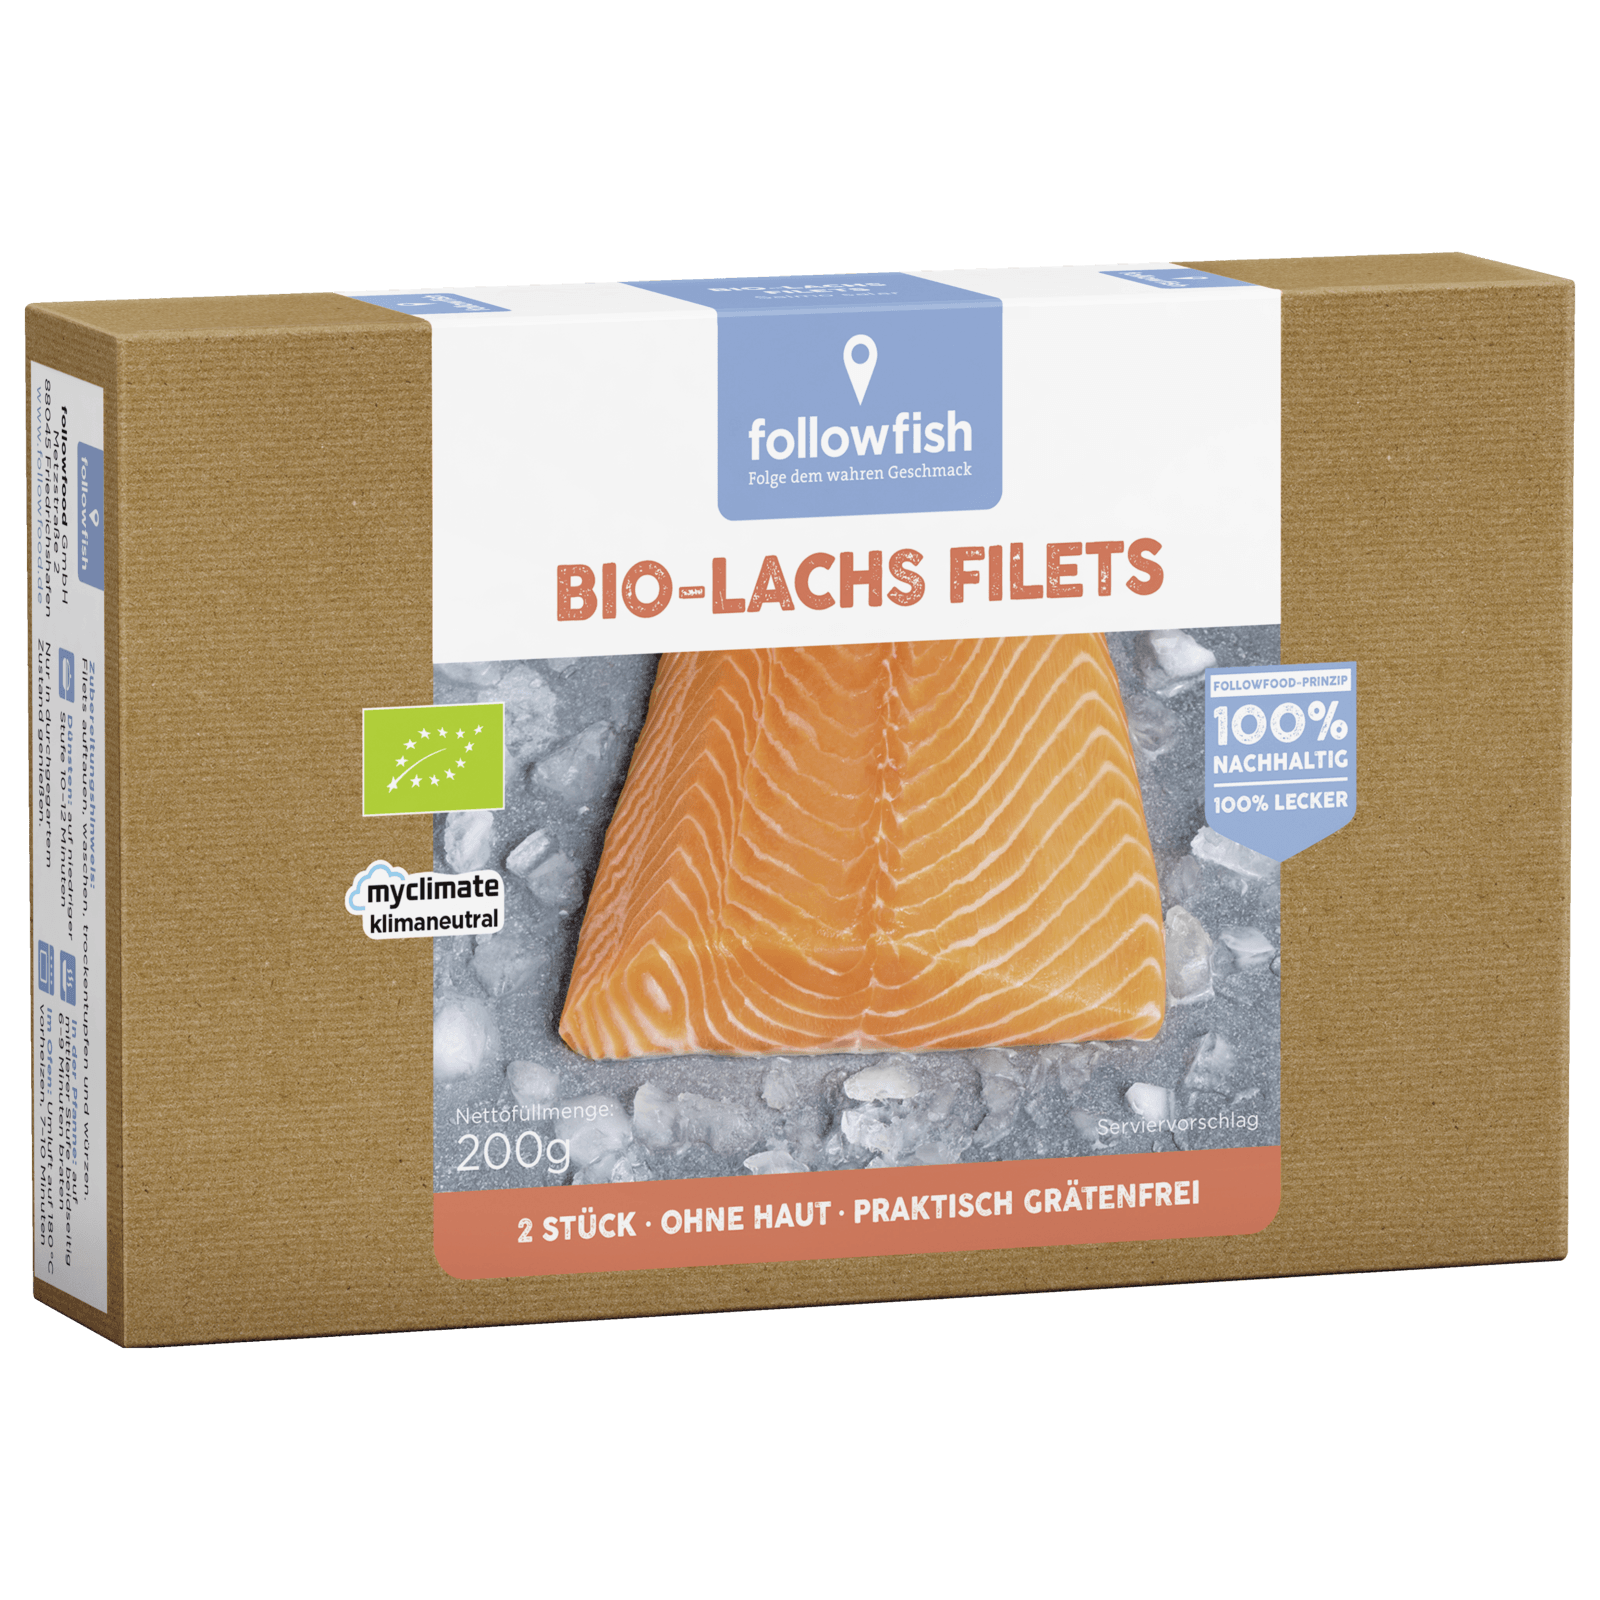 followfish Bio Lachs Filets 200g SALMO SALAR / TIEFGEKÜHLT